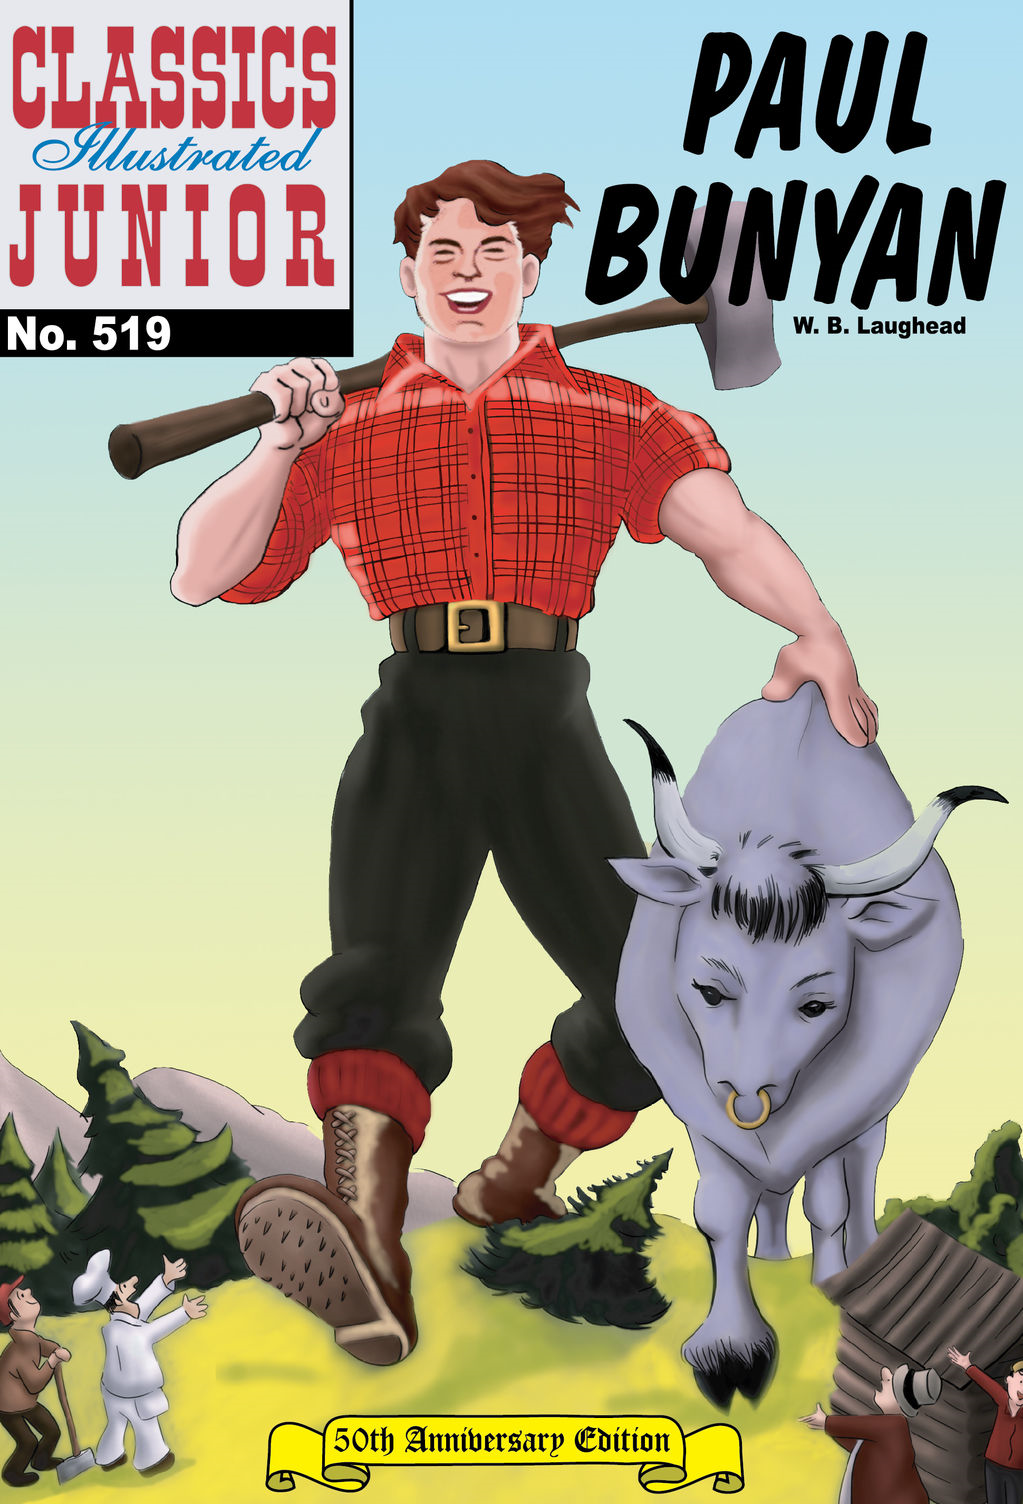 Paul Bunyan - Classics Illustrated Junior #519